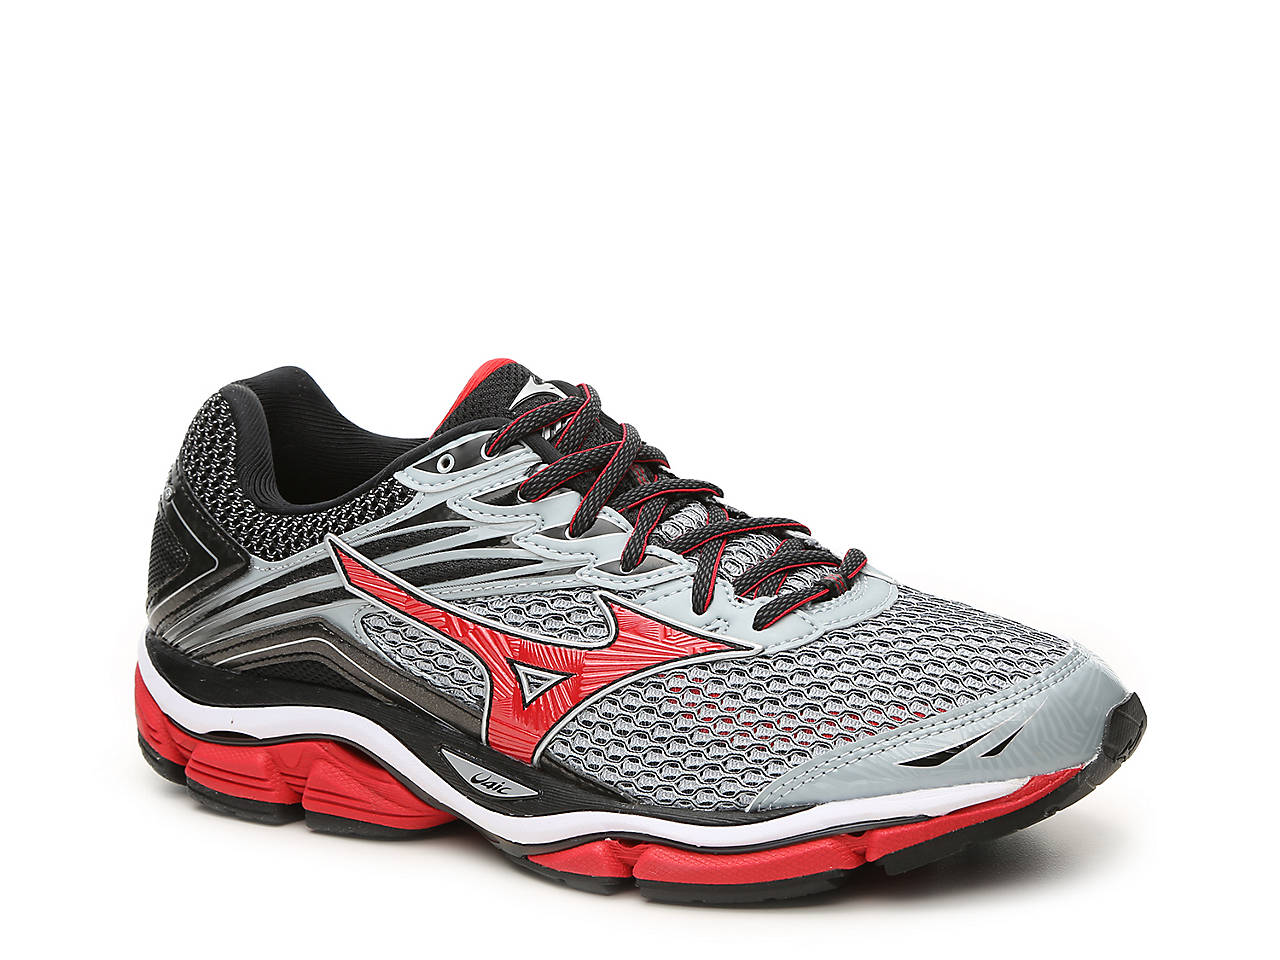 en venta 0ee5b b4f0d Wave Enigma 6 Performance Running Shoe - Men's